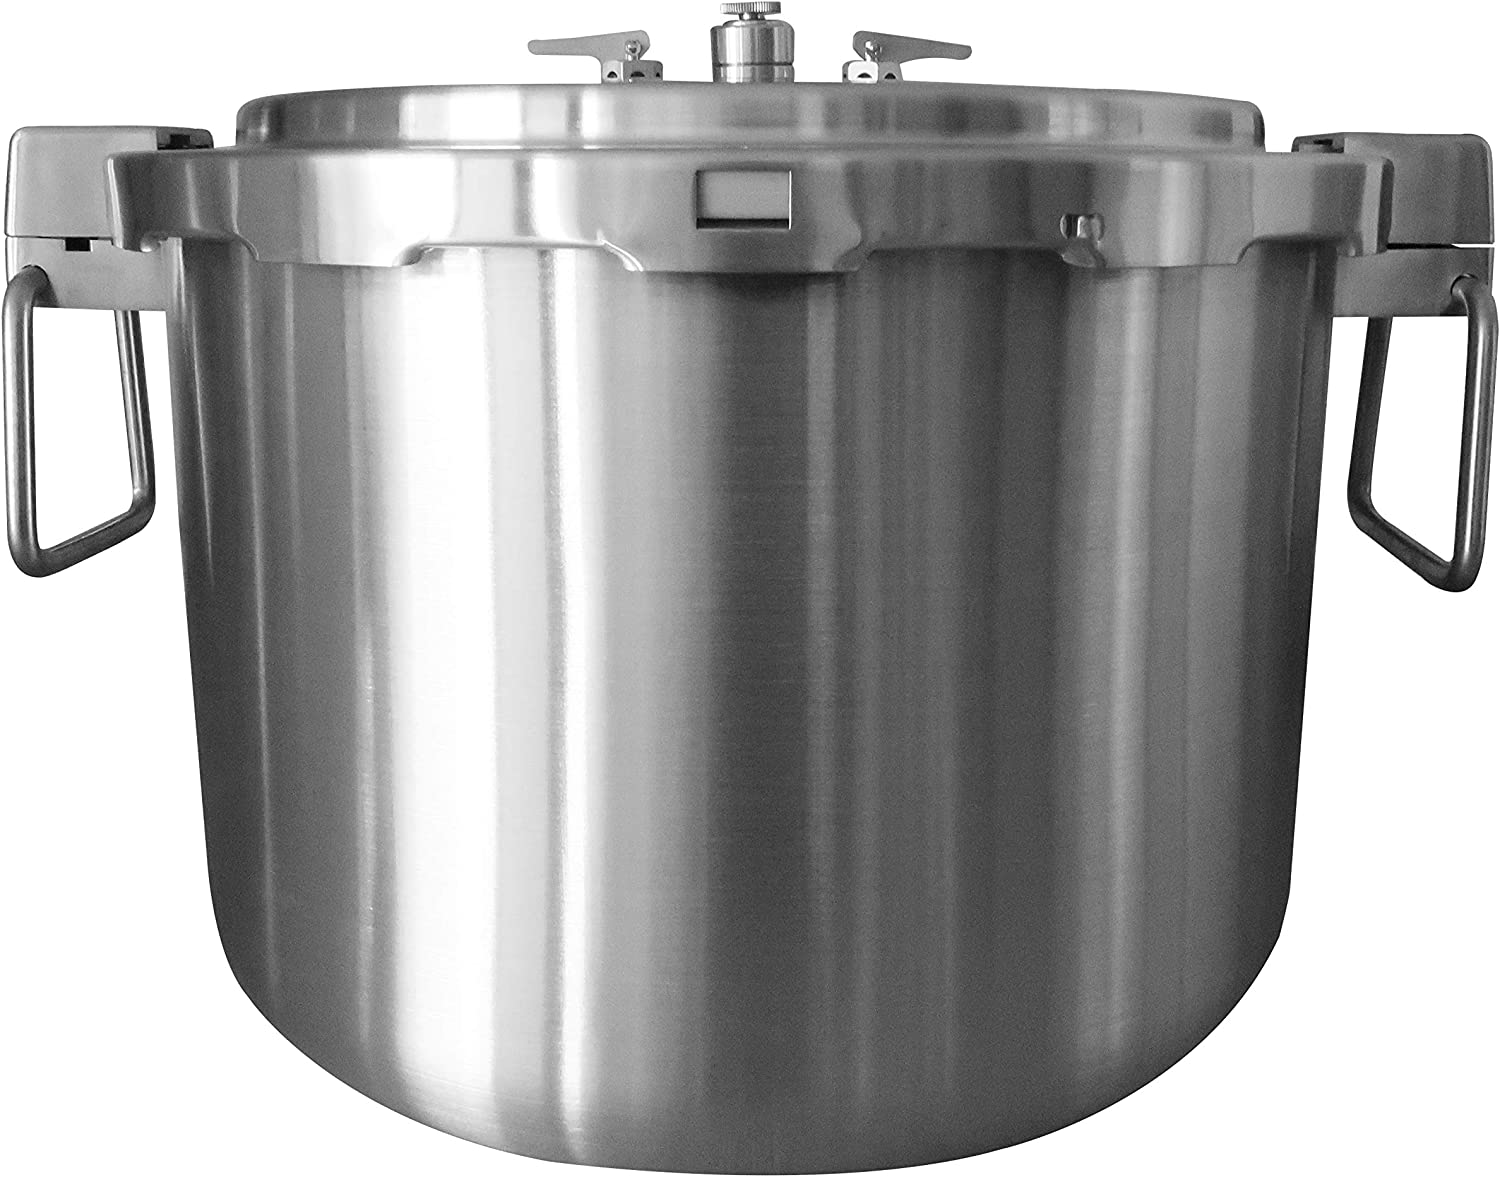 Buffalo QCP435 37-Quart Stainless Steel Pressure Cooker [Commercial series]- Pressure Gauge EXCLUDED